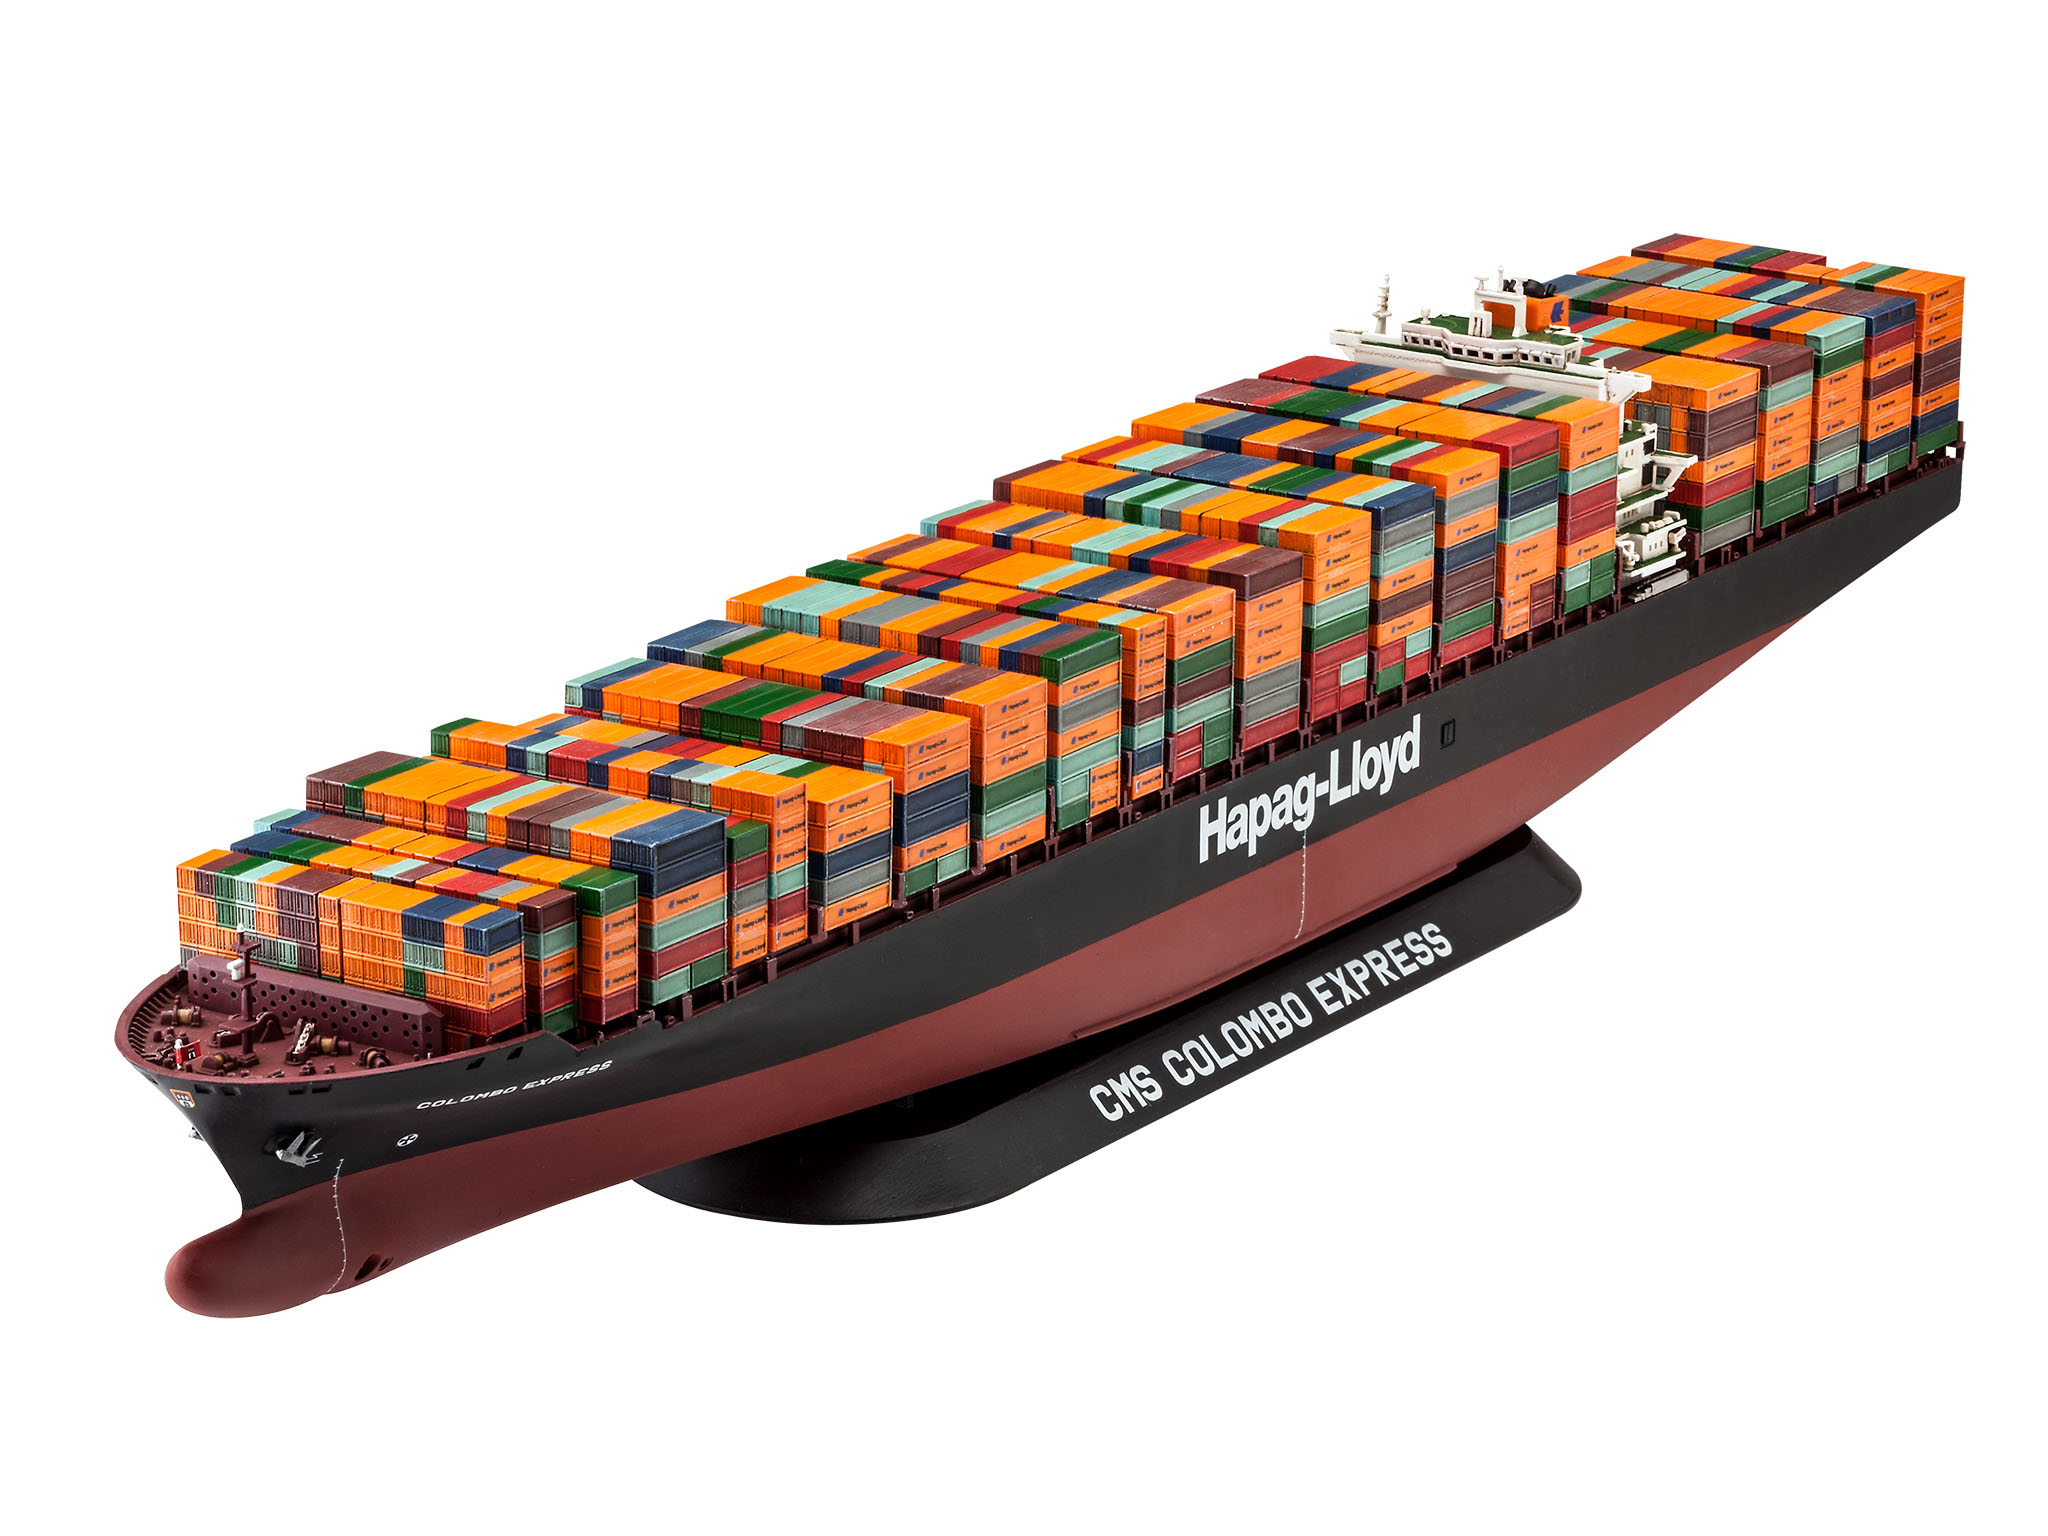 Le Meilleur Revell Shop Container Ship Colombo Express Revell Shop Ce Mois Ci